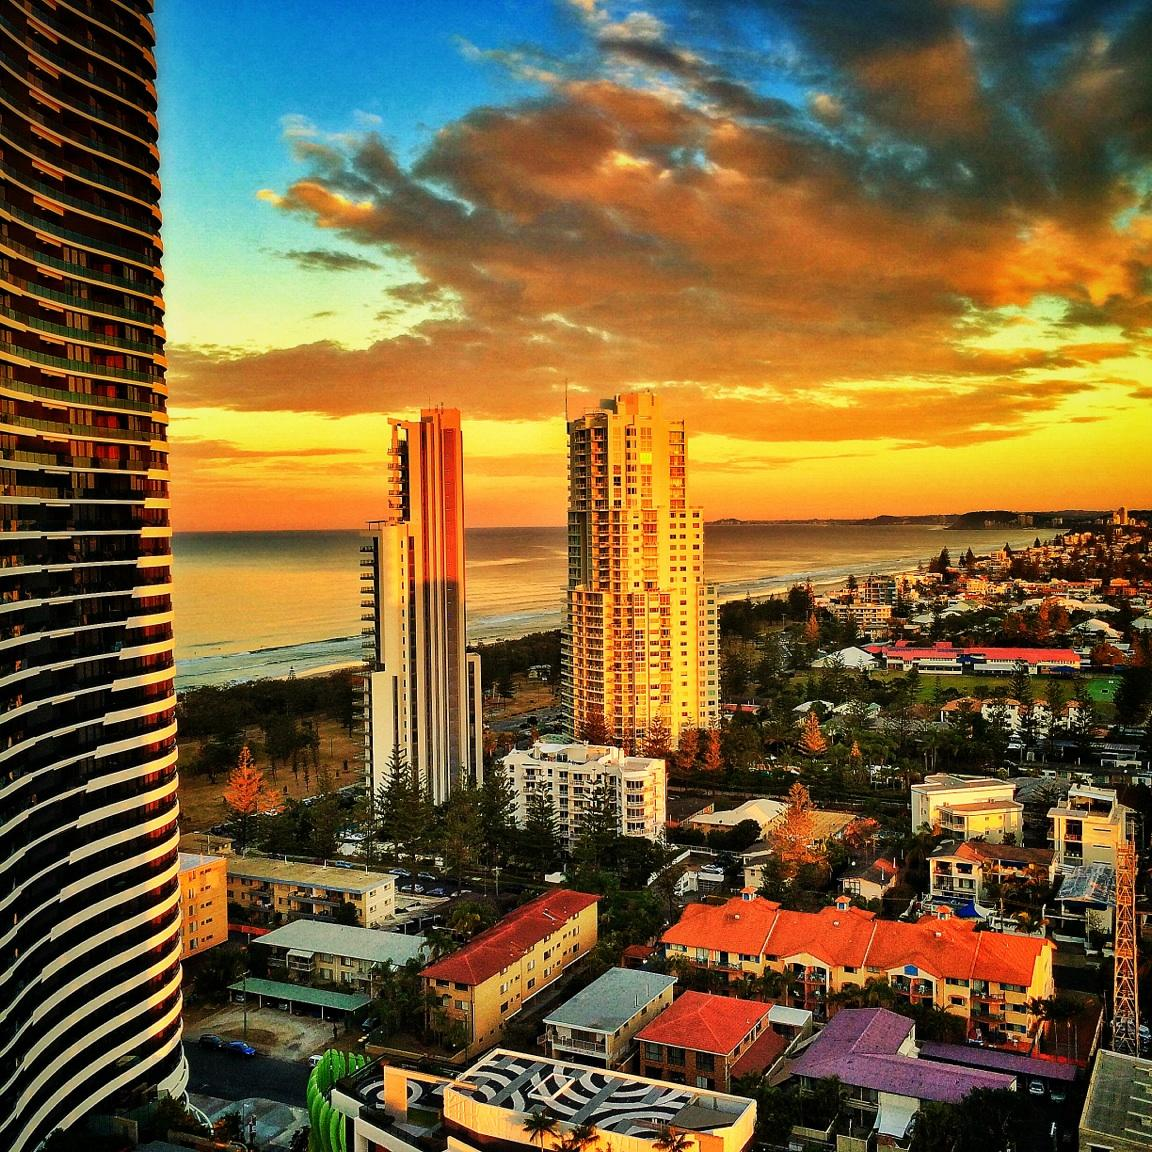 Gold Coast Sunset 😍 http://t.co/dy97kCuNR1